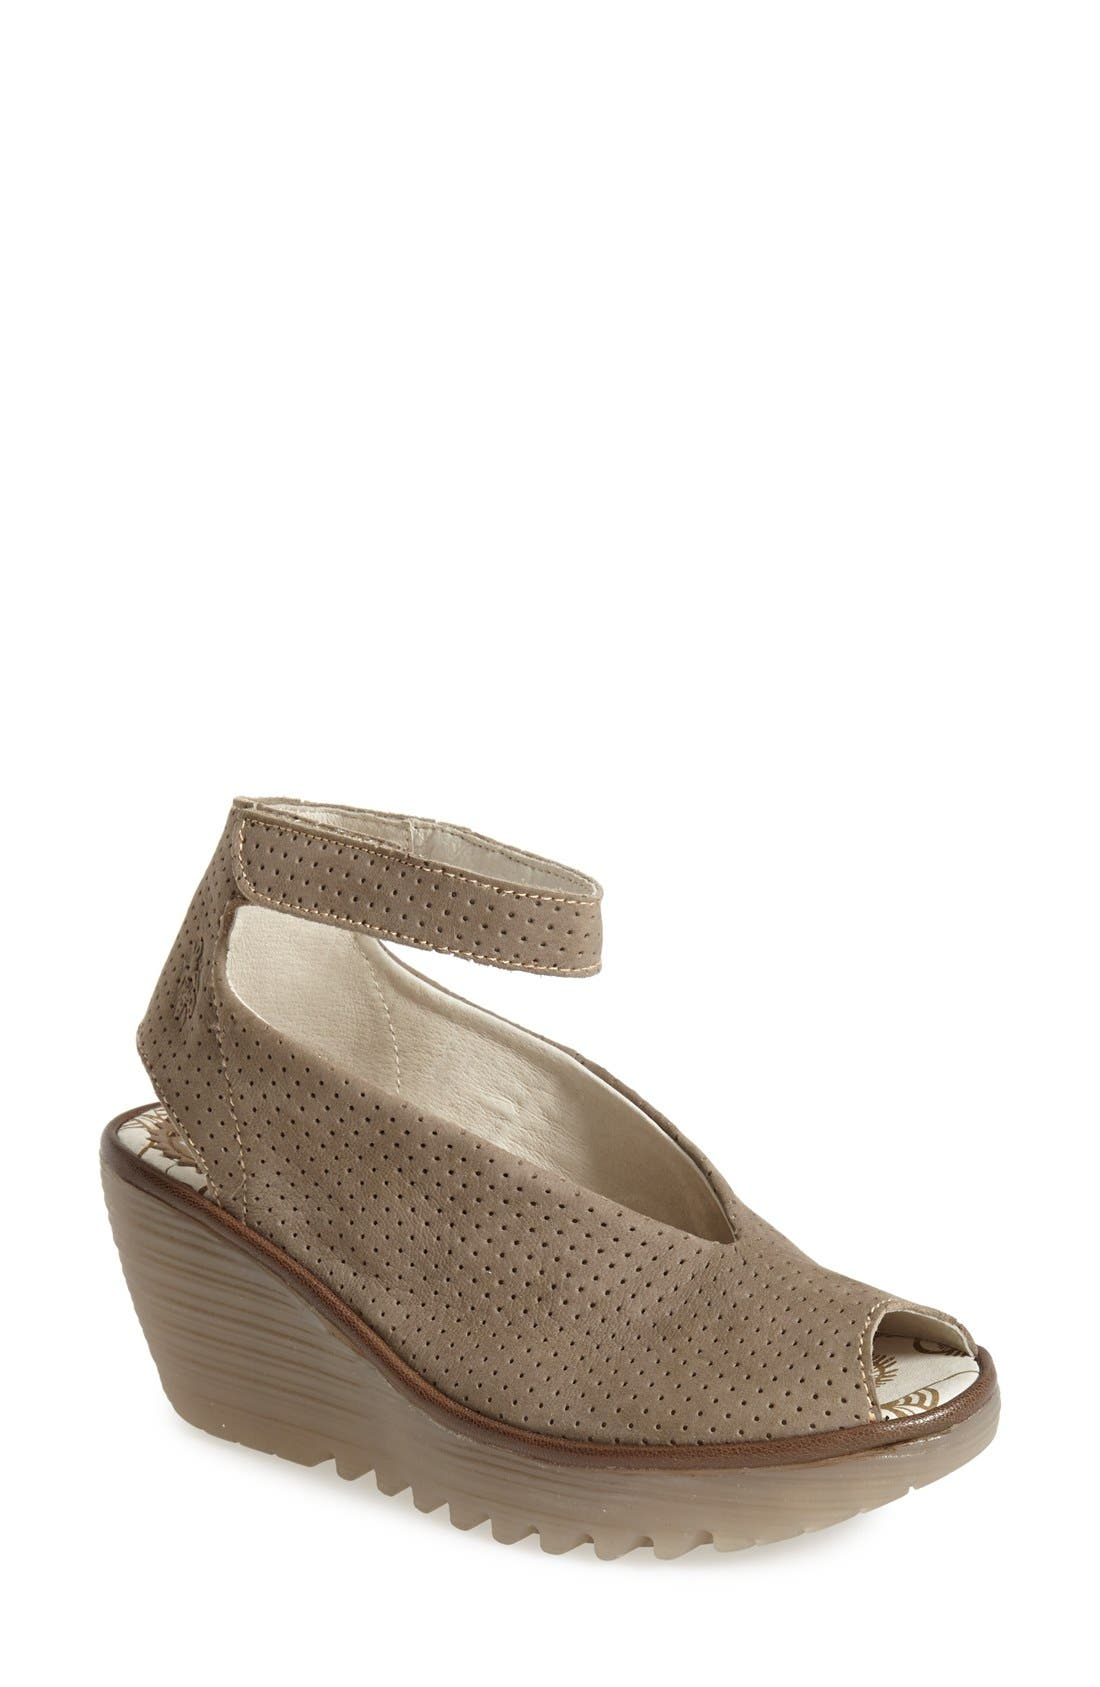 Fly London 'Yala' Perforated Leather Sandal